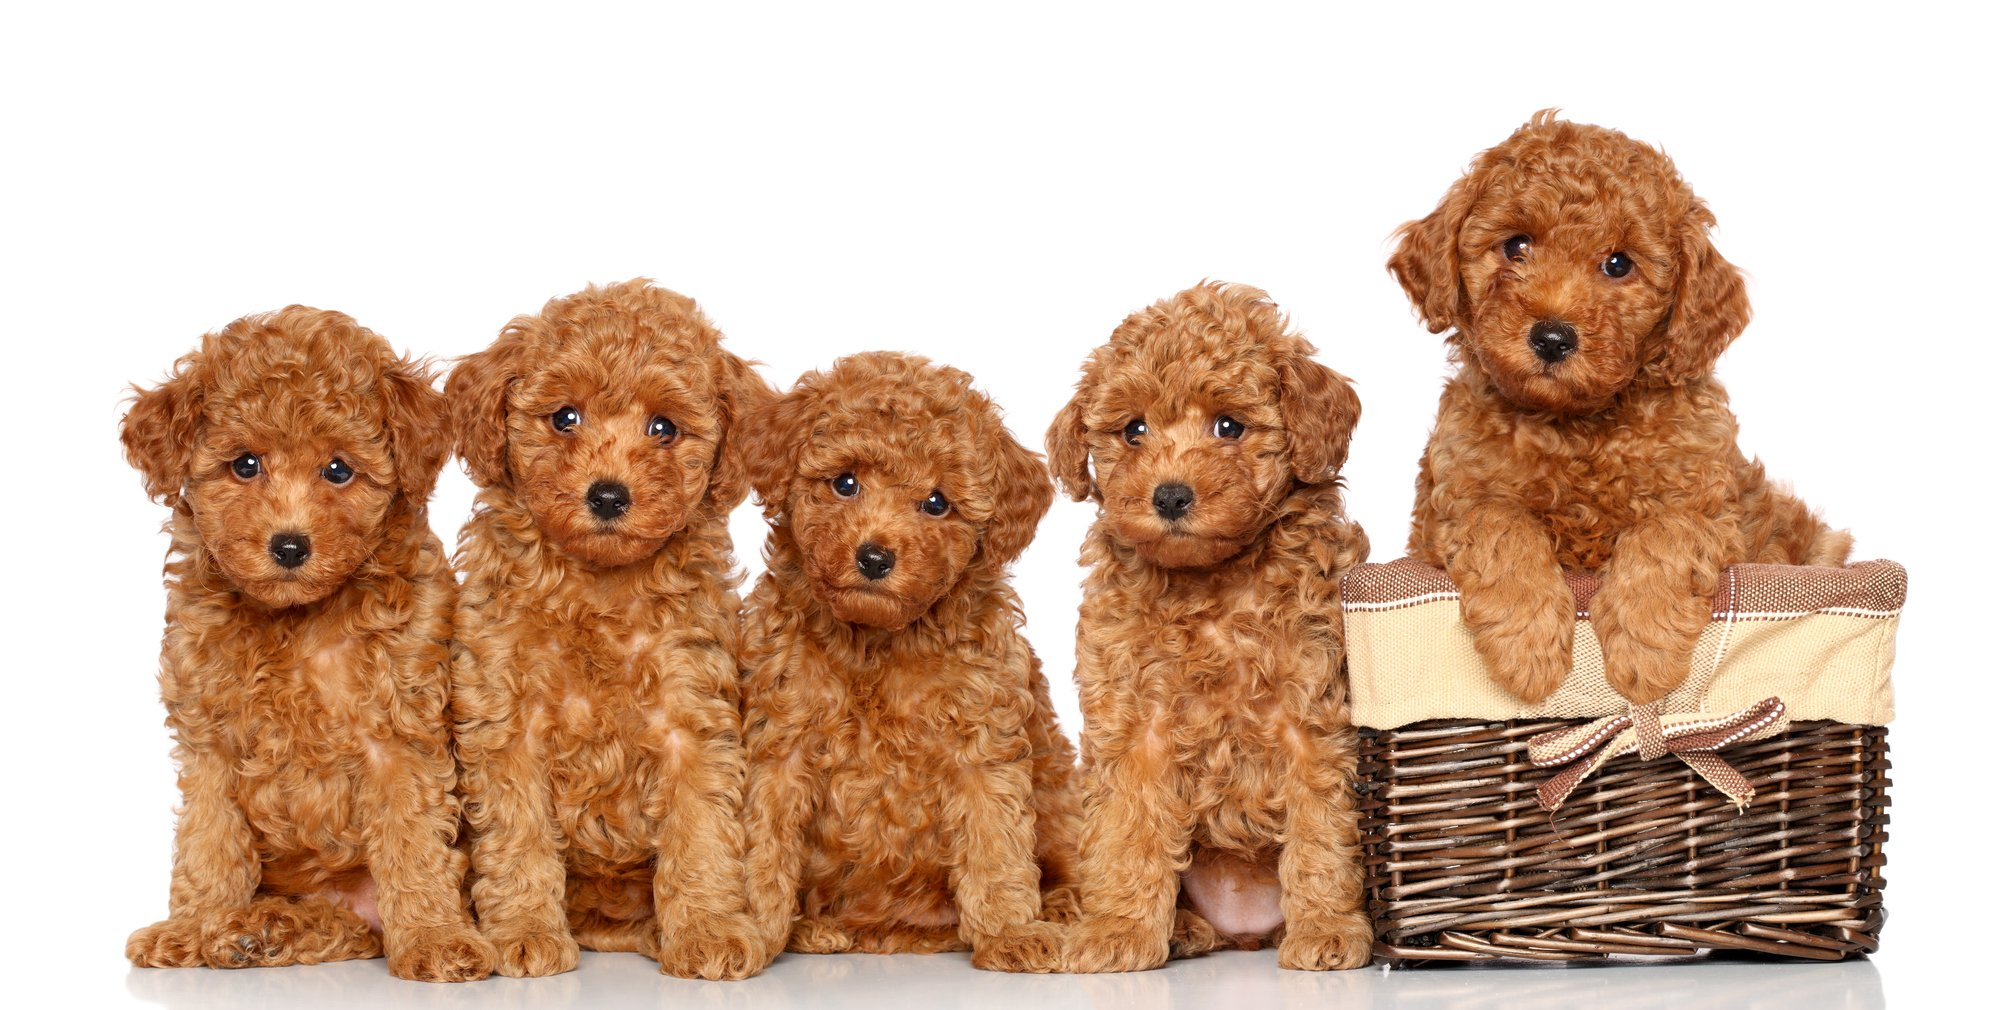 5 poodle puppies with 1 puppy in a basket with a white background